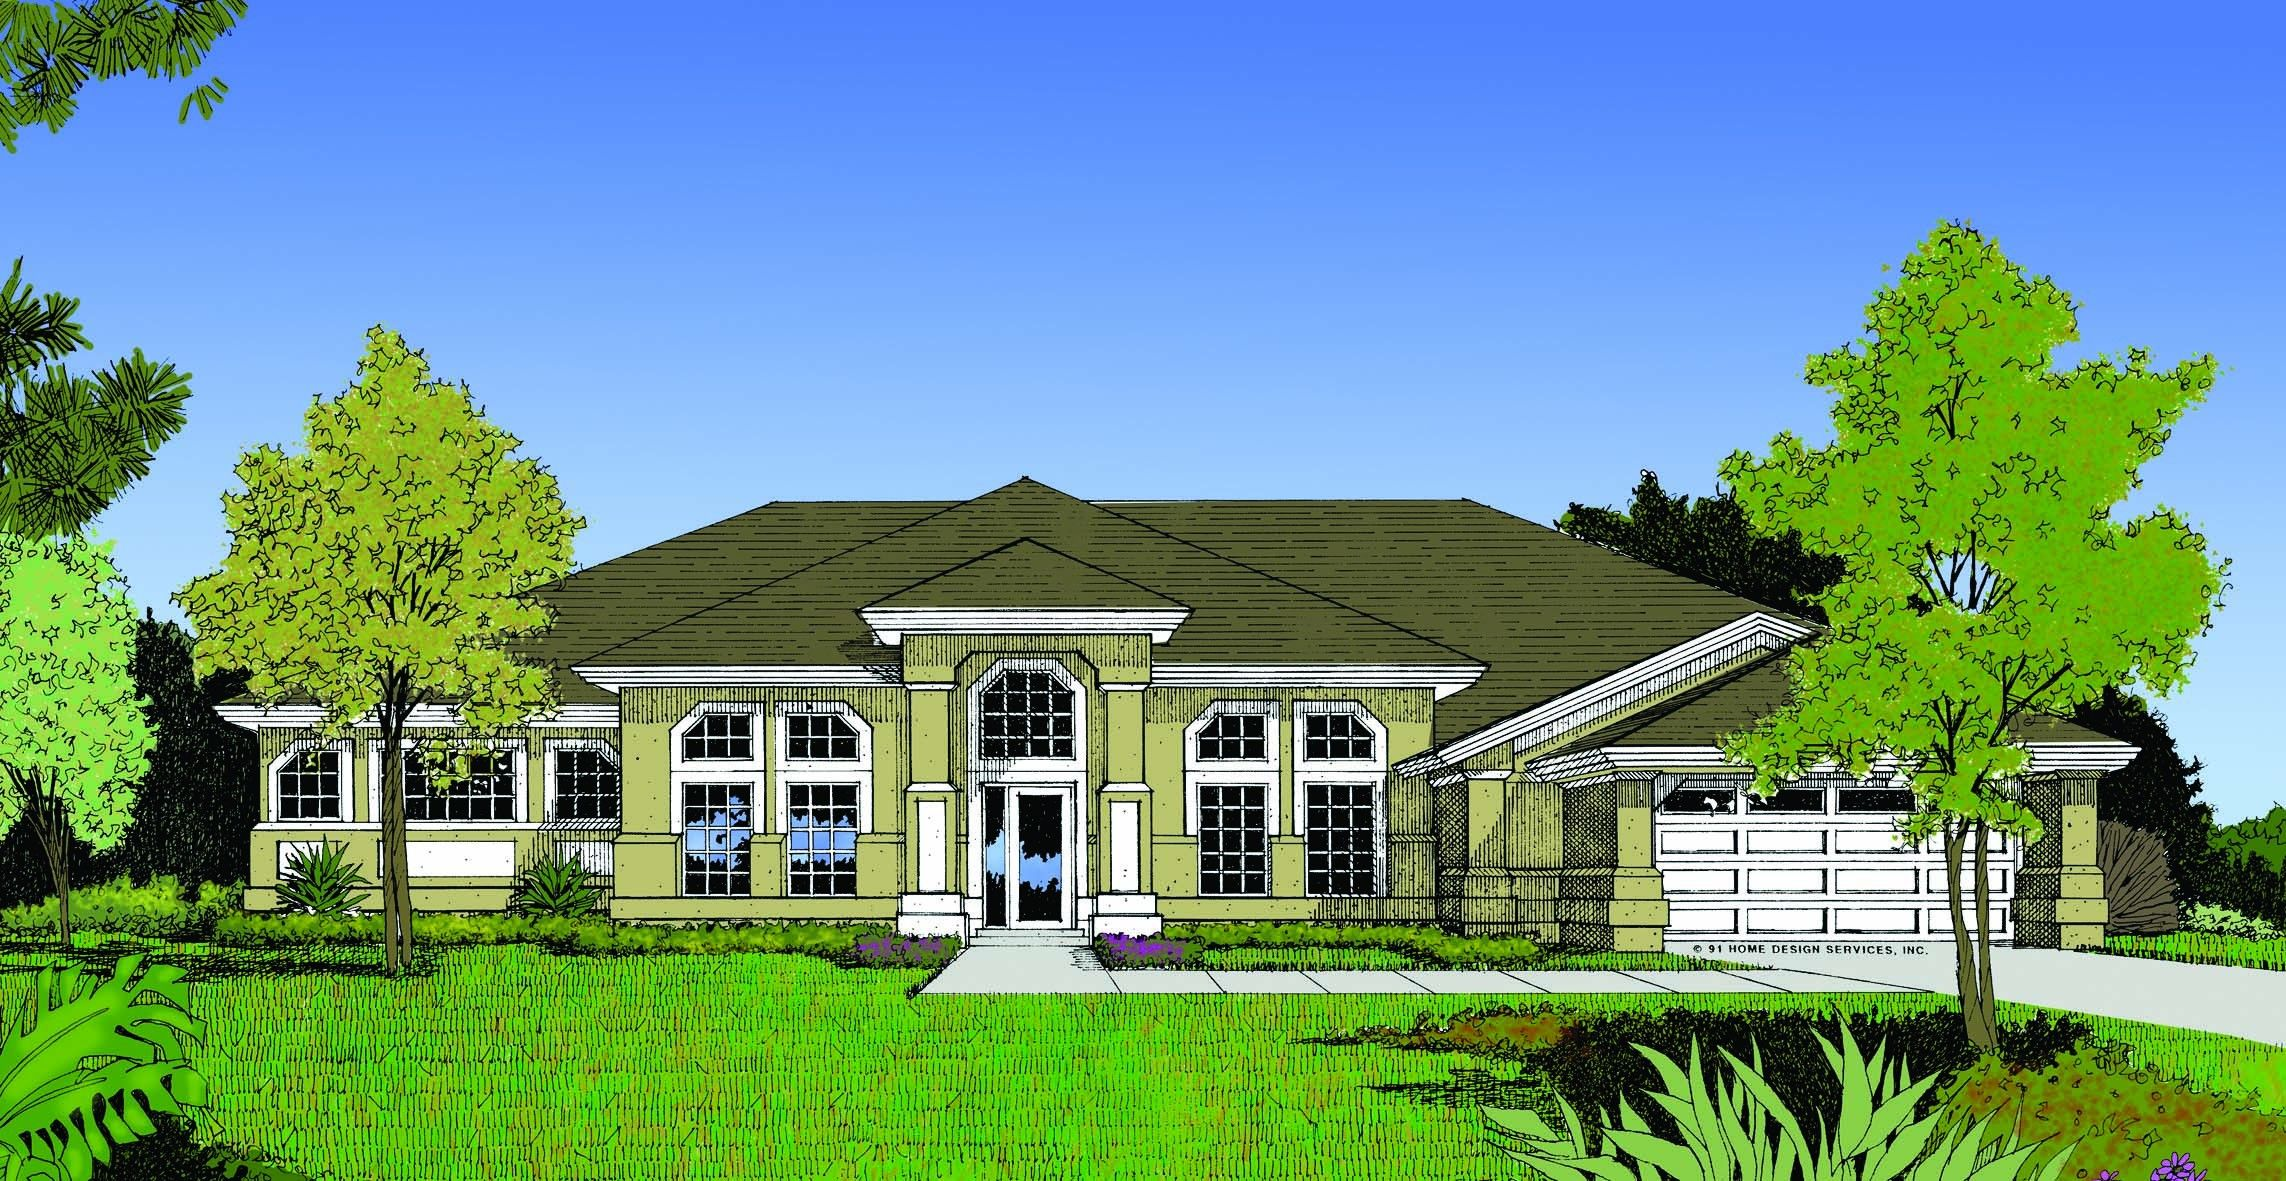 Eplans Italianate House Plan Future Perfect 2691 Square Feet And 4 Bedrooms From Mediterranean Style House Plans Mediterranean House Plan Beach House Plans